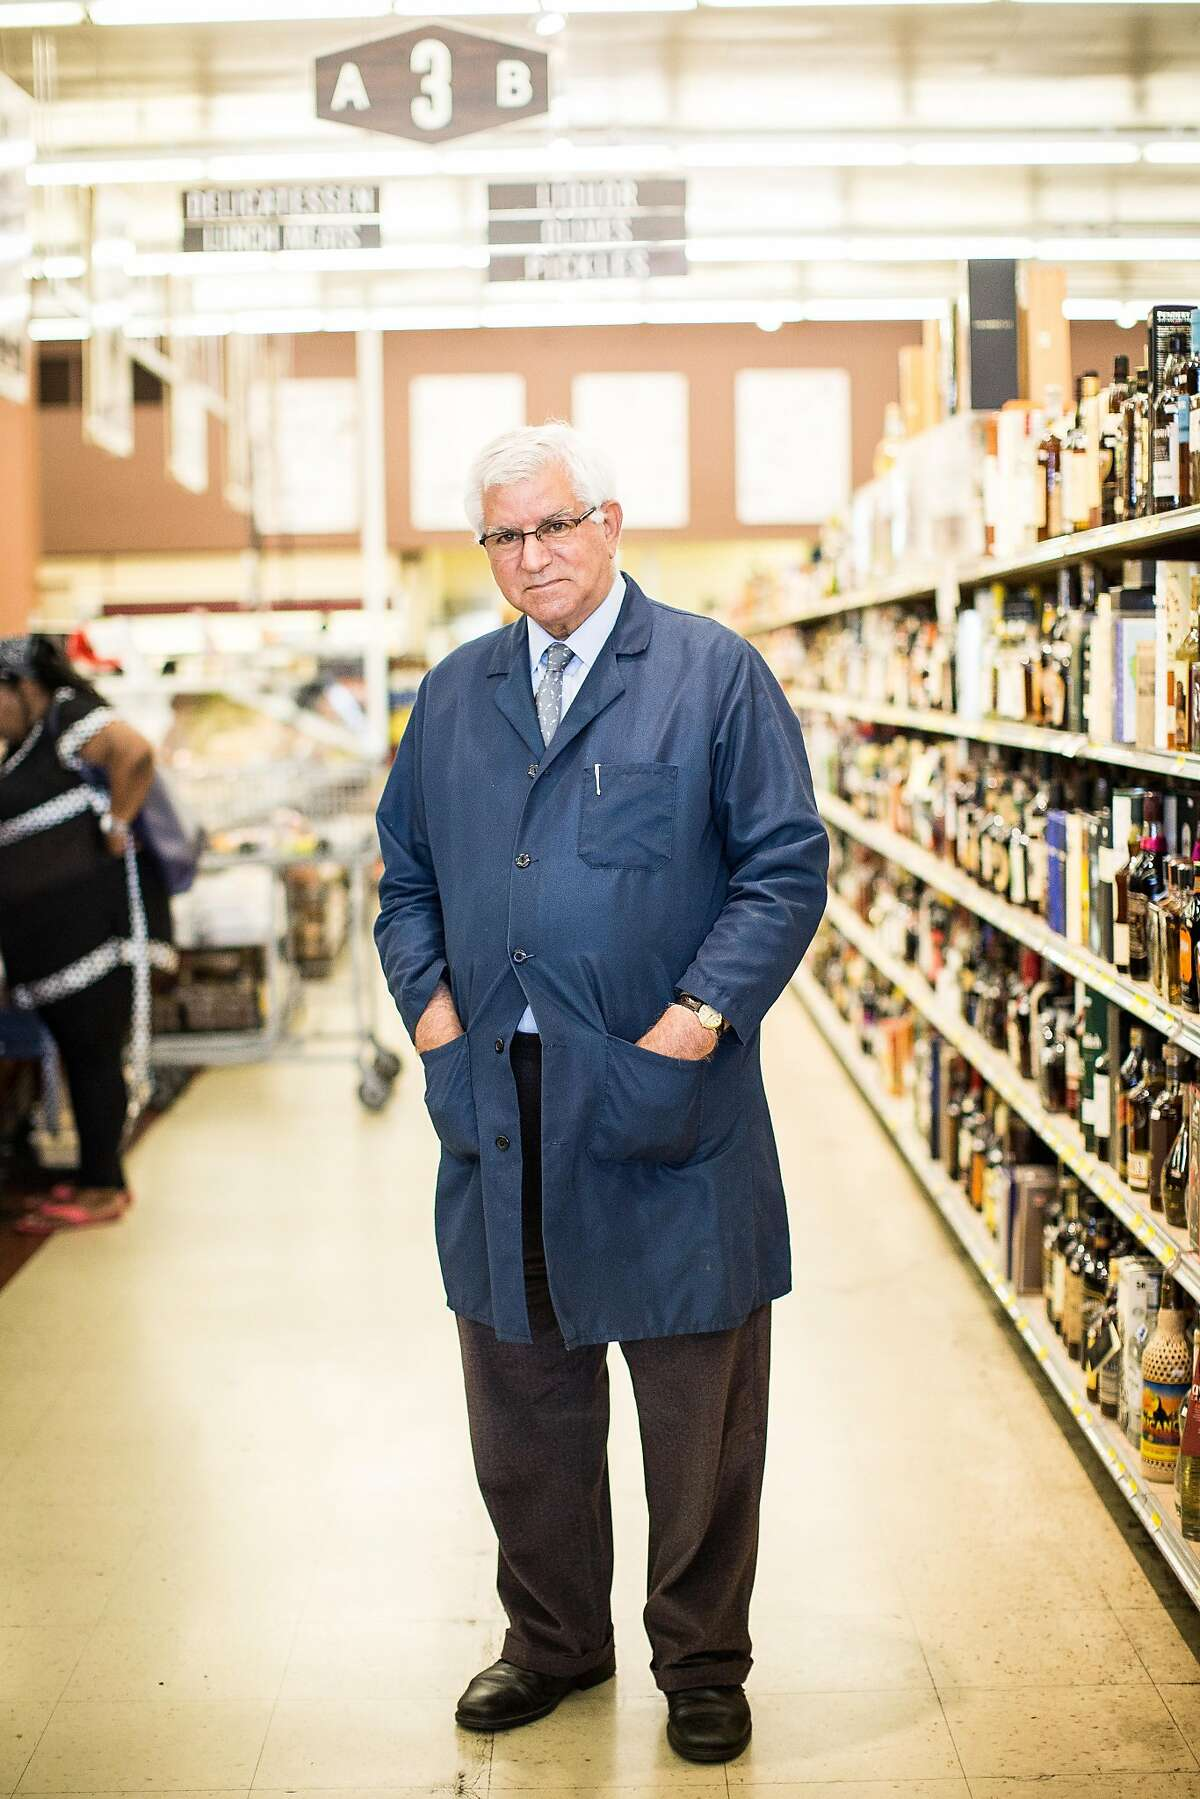 Darrell Corti, owner of Corti Brothers grocery store, poses for a portrait in east Sacramento, California, August 15, 2015.